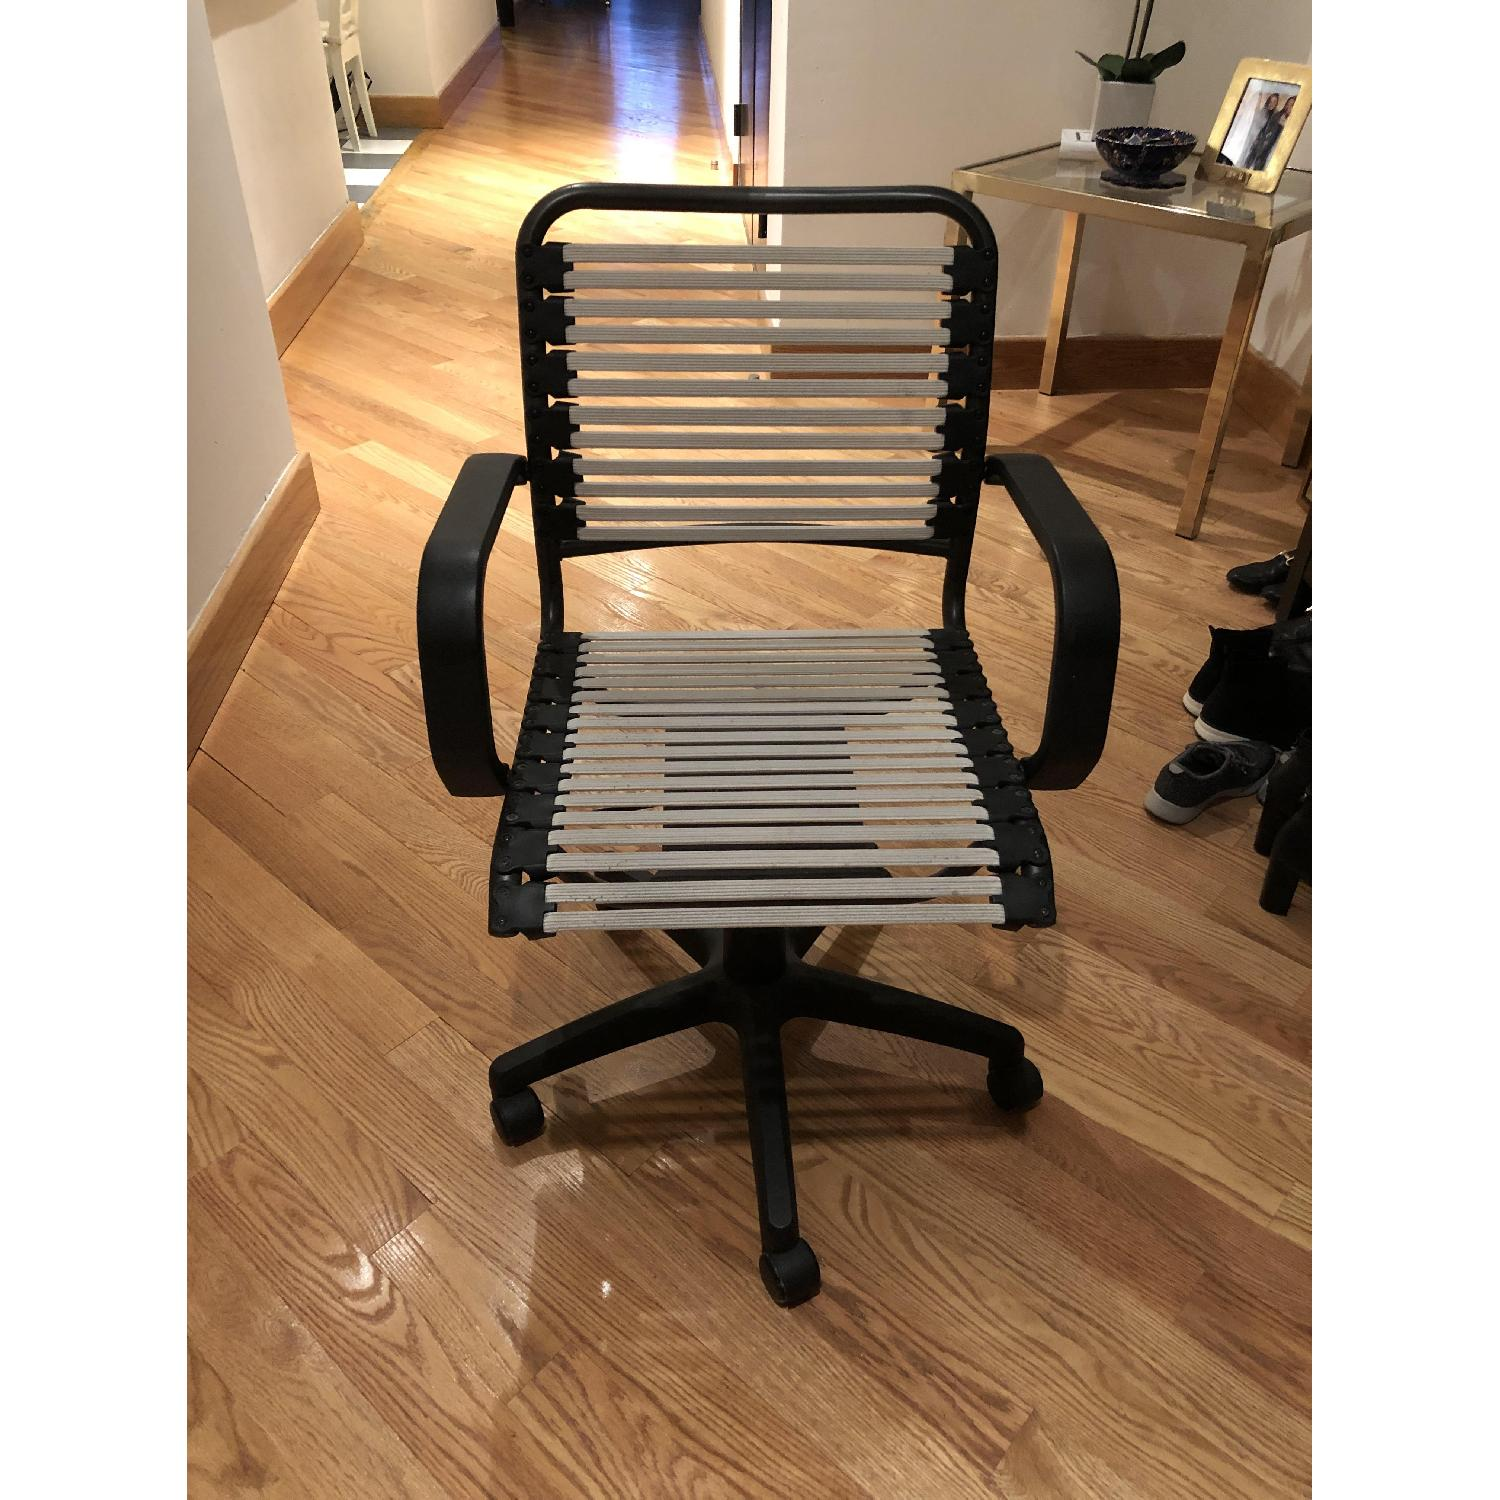 Container Store White Flat Bungee Office Chair w/ Arms-3